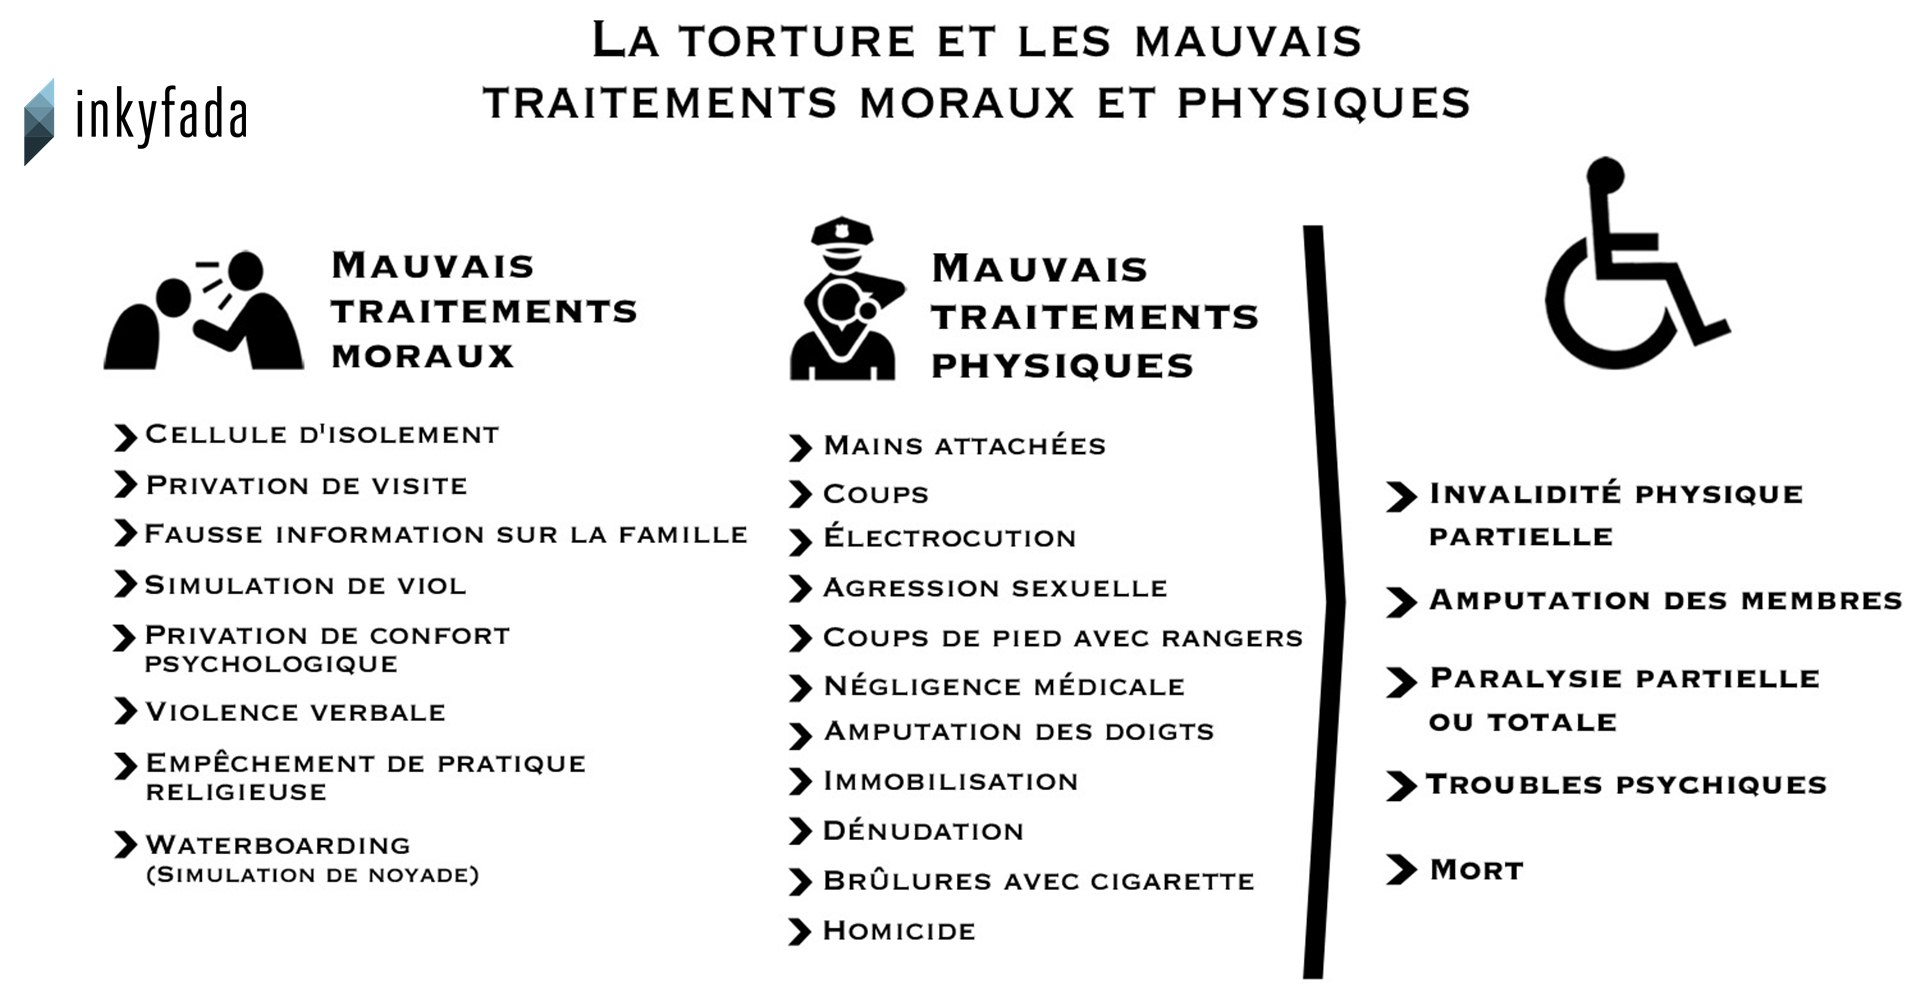 tableau-torture-morale-physique-1920-inkyfada.jpg